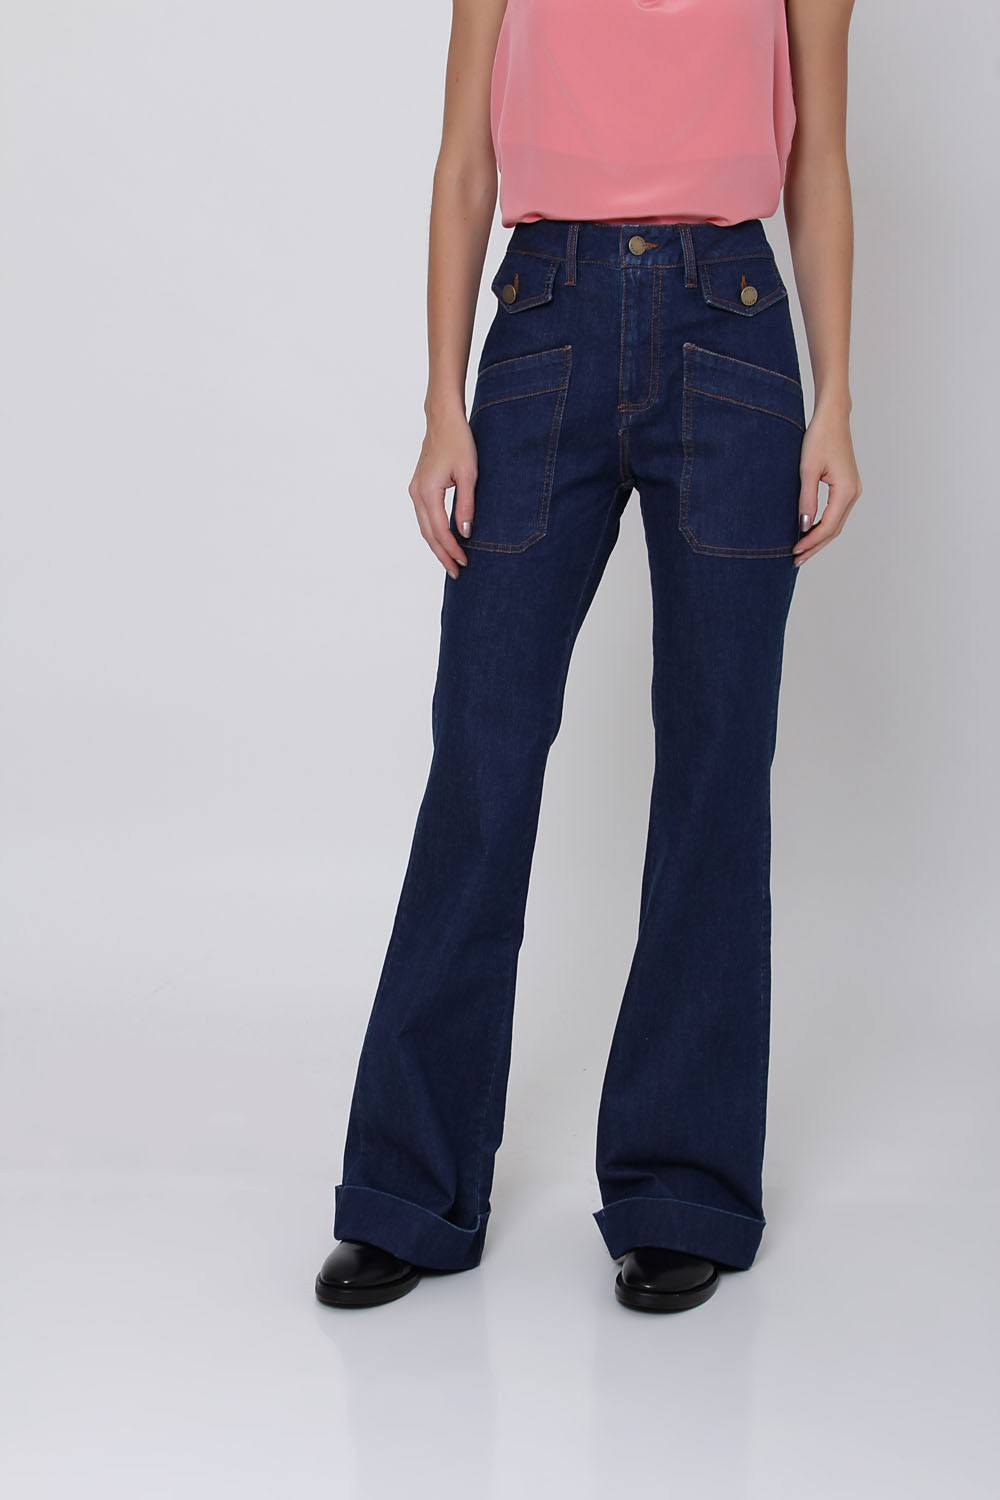 CALCA FLARE BASIC JEANS I20